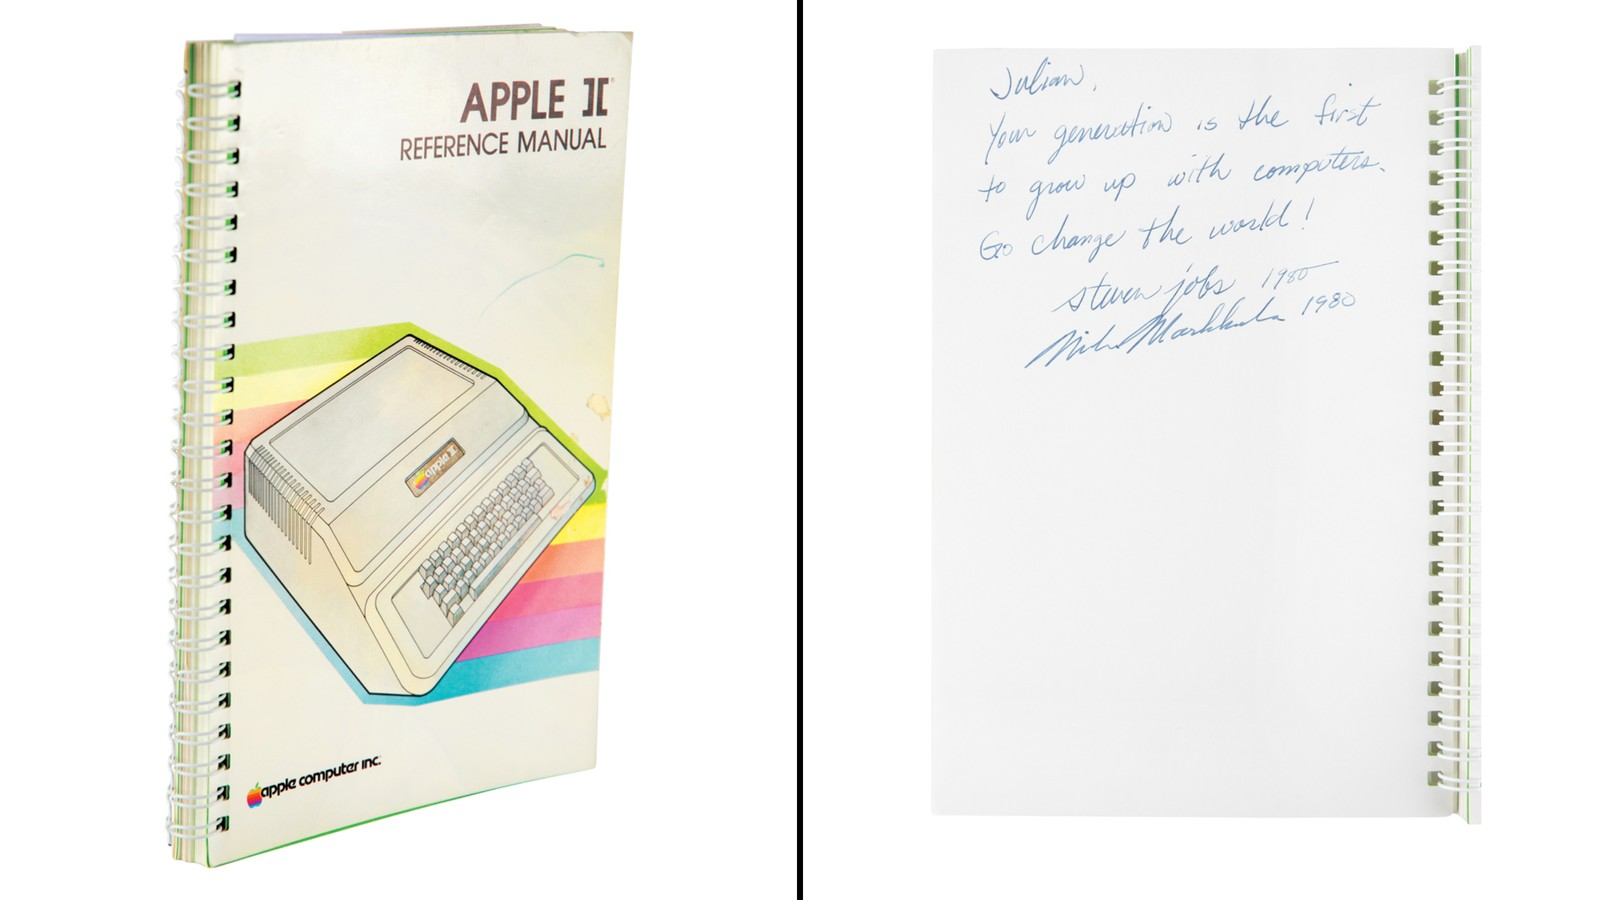 The Apple II manual signed by Steve Jobs and Mike Markkula, an early investor in Apple.